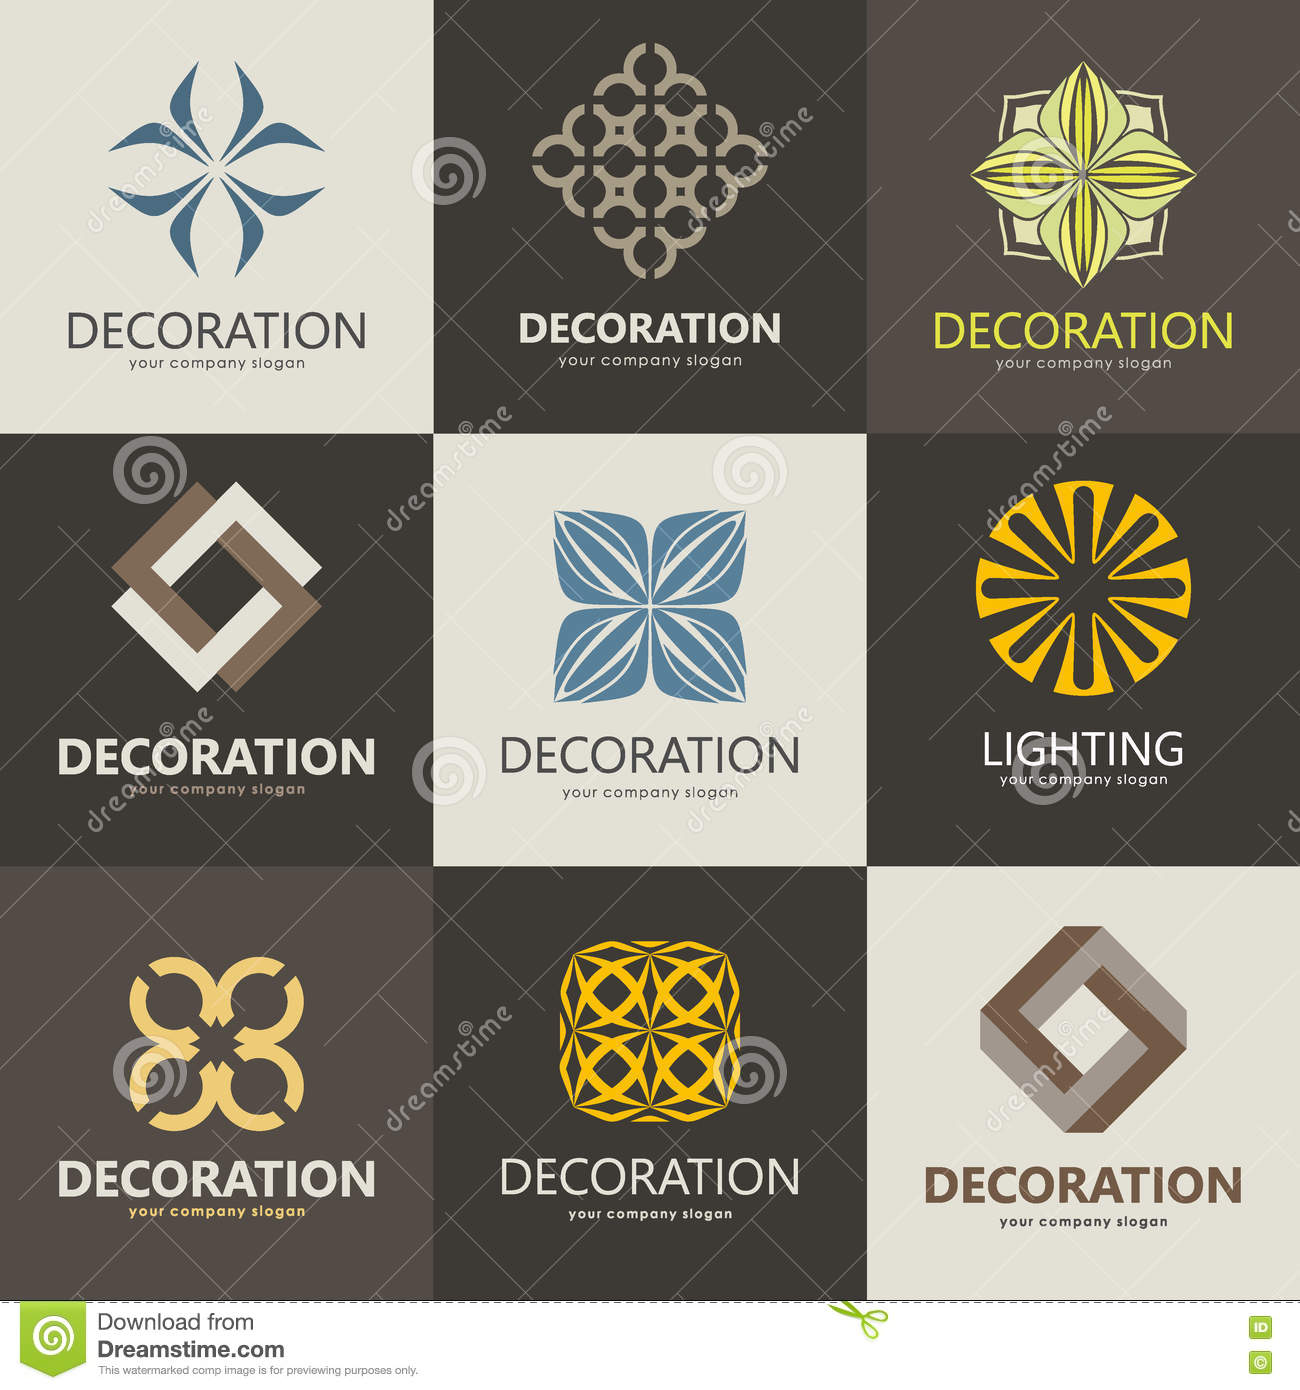 A collection of logos for interior furniture shops Decorating items shop near me